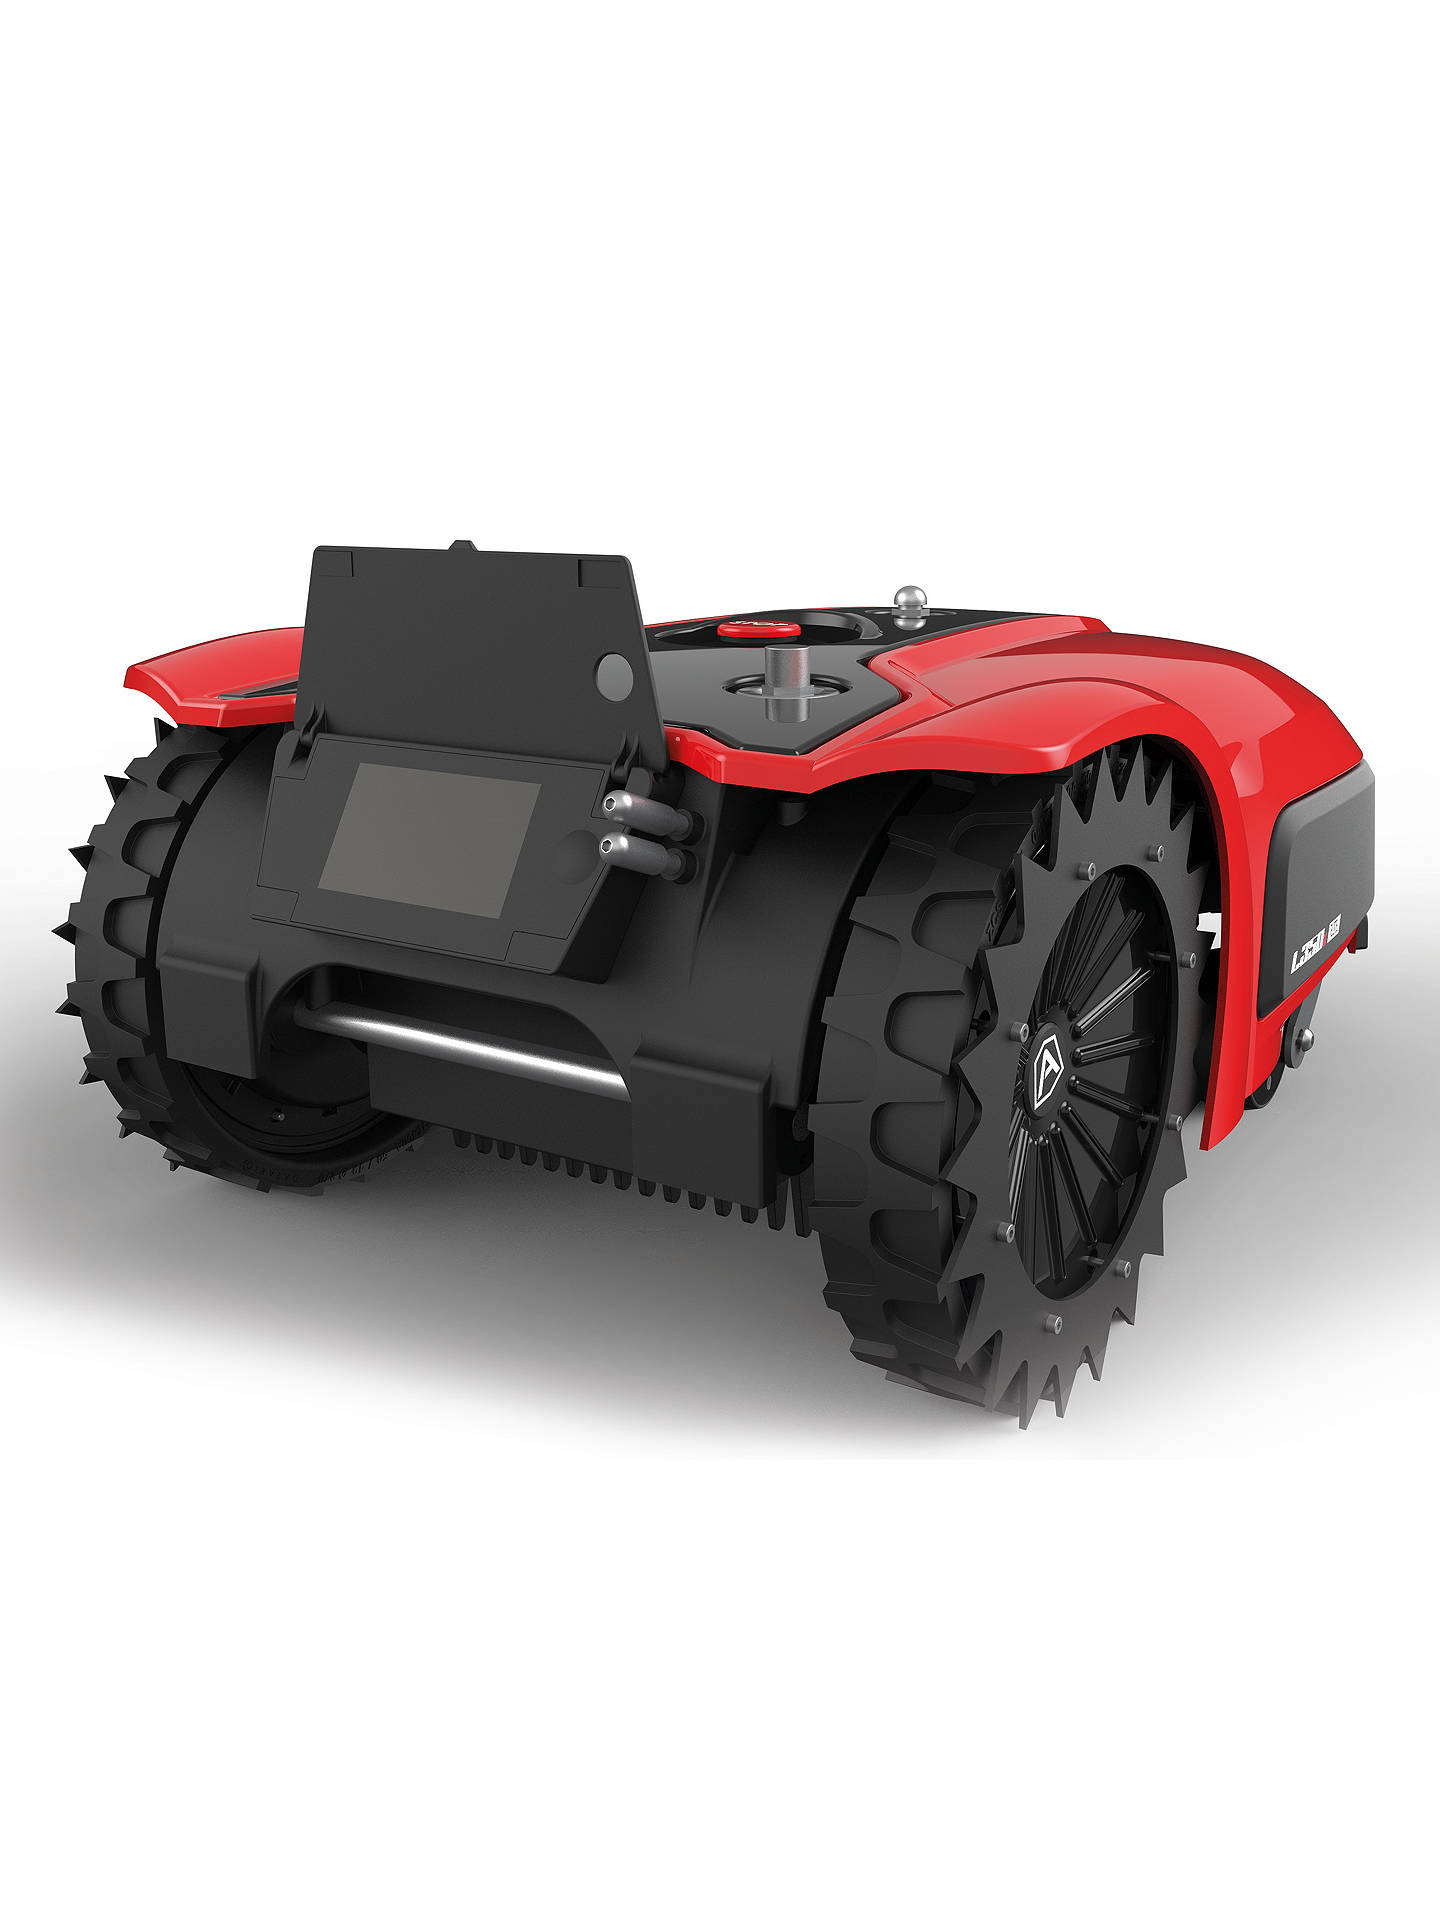 BuyAmbrogio L350i Elite Robotic Lawnmower Online at johnlewis.com